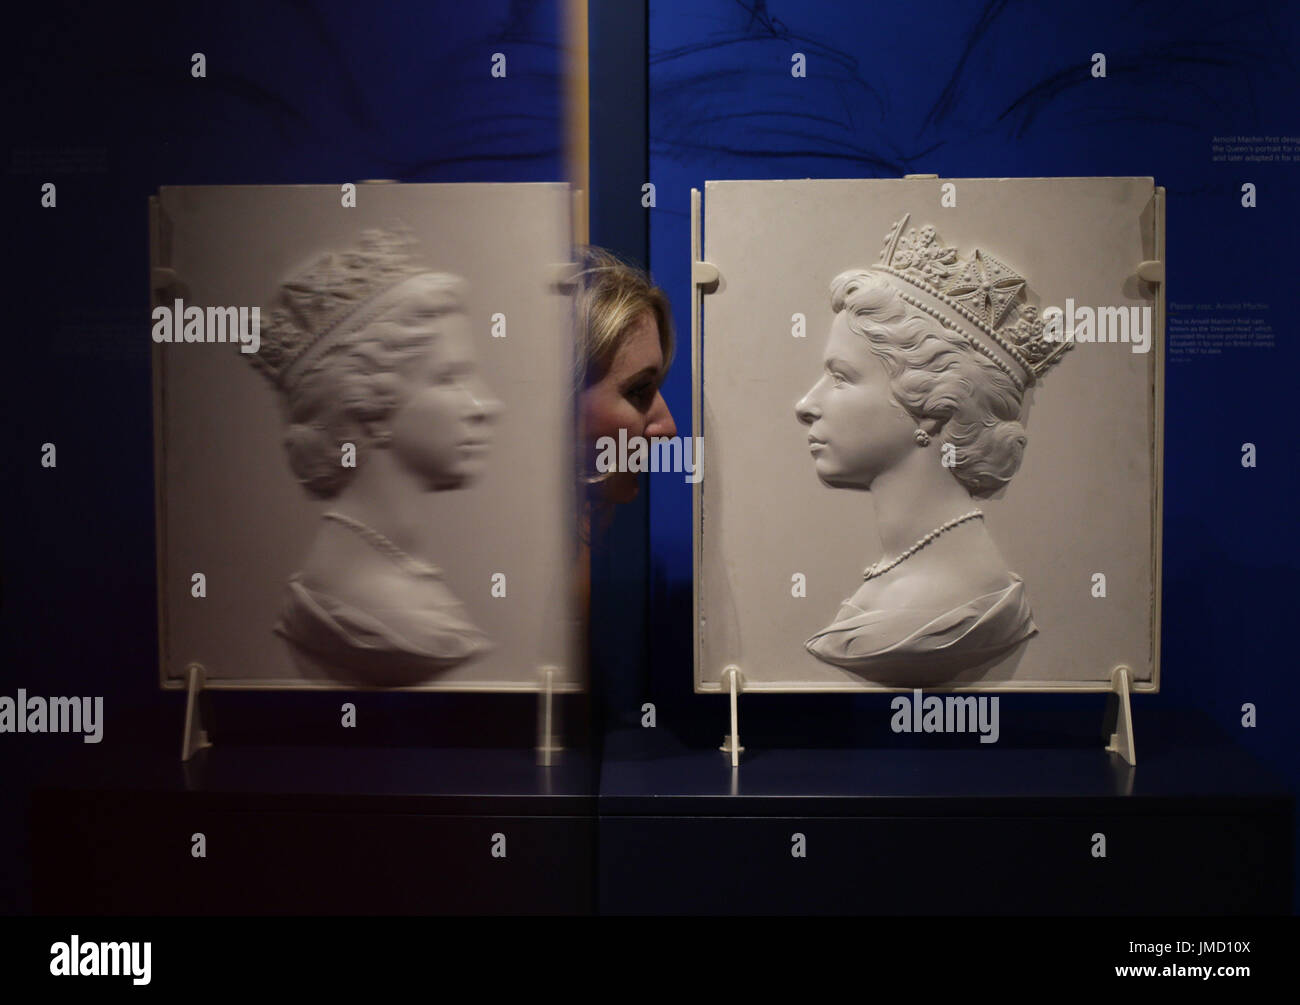 Embargoed to 0001 Friday July 28 A final plaster cast known as the 'Dressed Head', by Arnold Machin, of Queen Elizabeth II, which provided the portrait for use on British stamps from 1967 to date, on display during a preview of the Postal Museum in London. - Stock Image